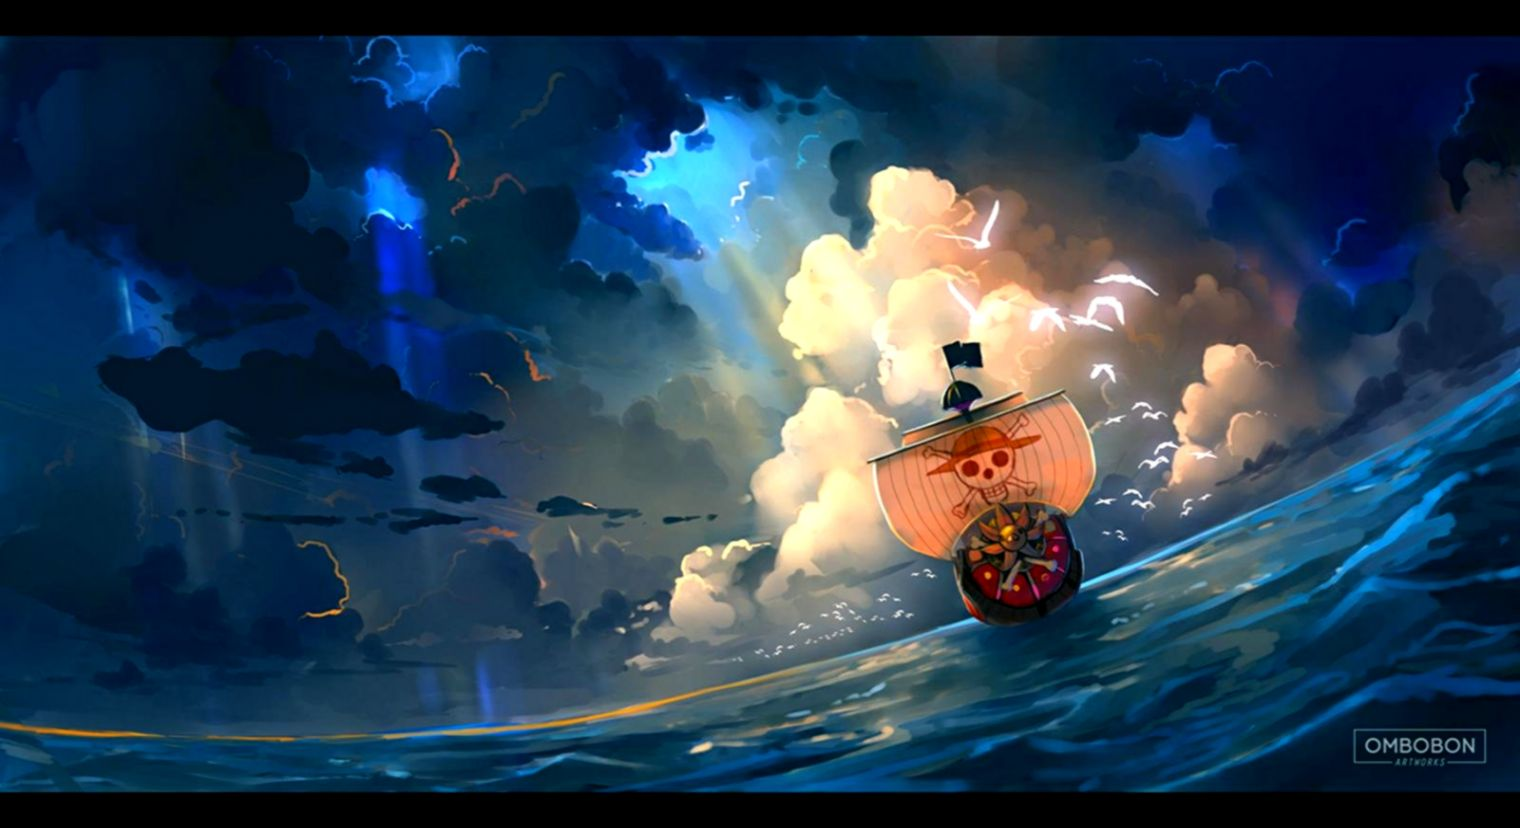 One Piece Wallpapers Desktop Backgrounds One Piece Wallpaper 4k 1504x828 Download Hd Wallpaper Wallpapertip